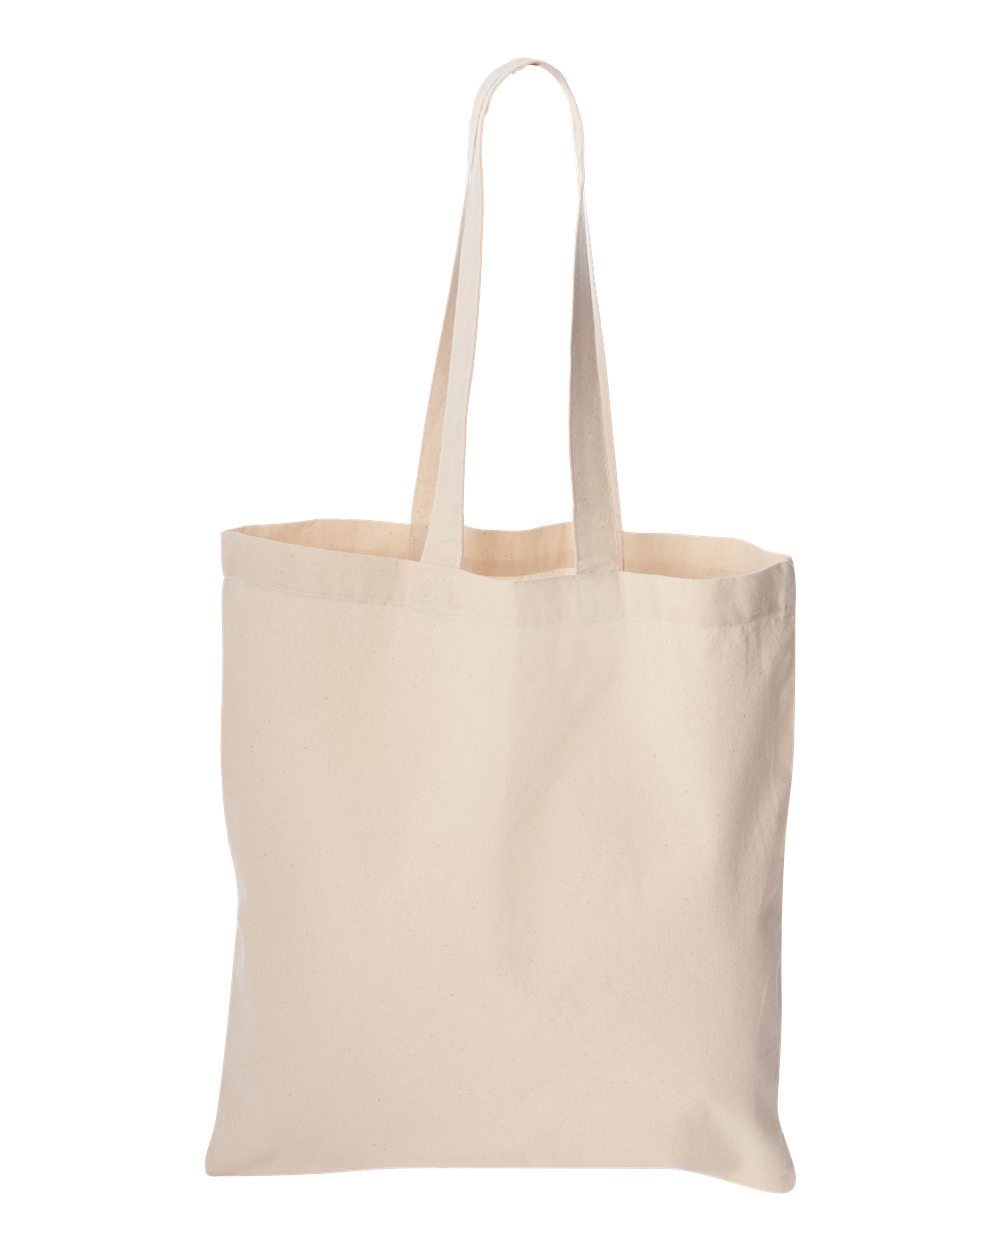 Totes Great Deal! - Custom printed tote bags are great for promoting your brand while staying under budget. When buying in bulk, these totes can be printed for as low as $2.00 each!